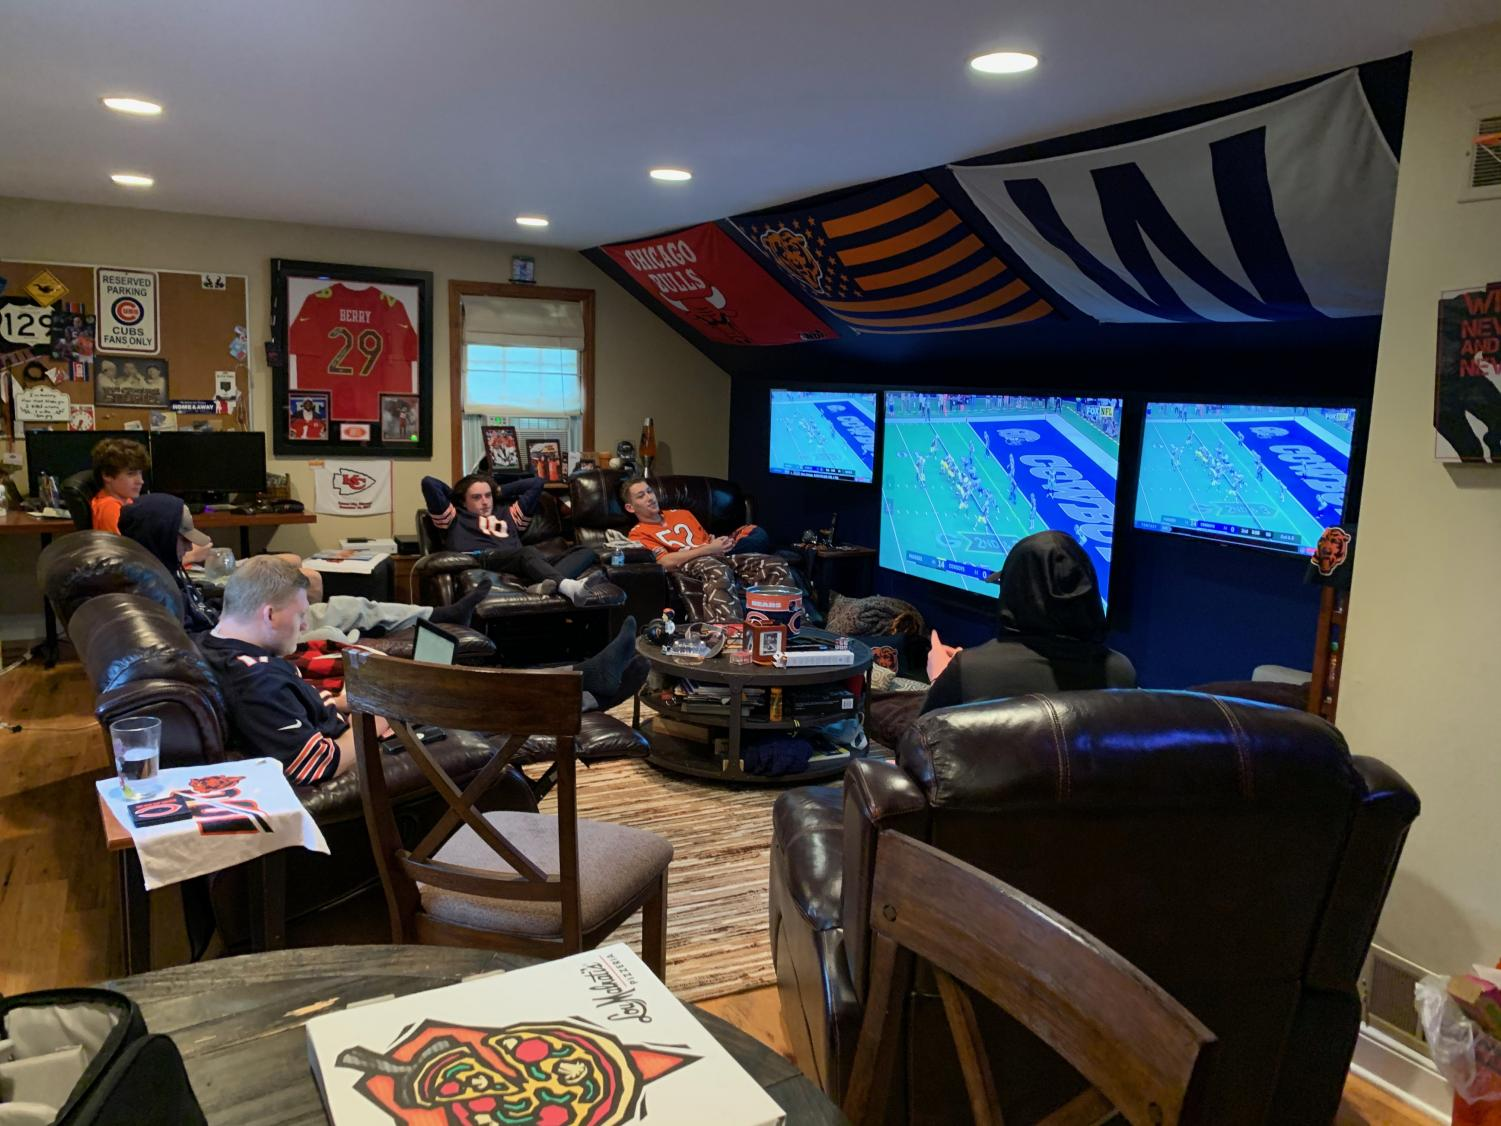 Senior Jarod Rosenbloom's fantasy football league gathers around to watch the games and track their players. The focal point of their room consists of three TVs: one in the center to play their main game and the other surrounding two to watch NFL Red Zone.